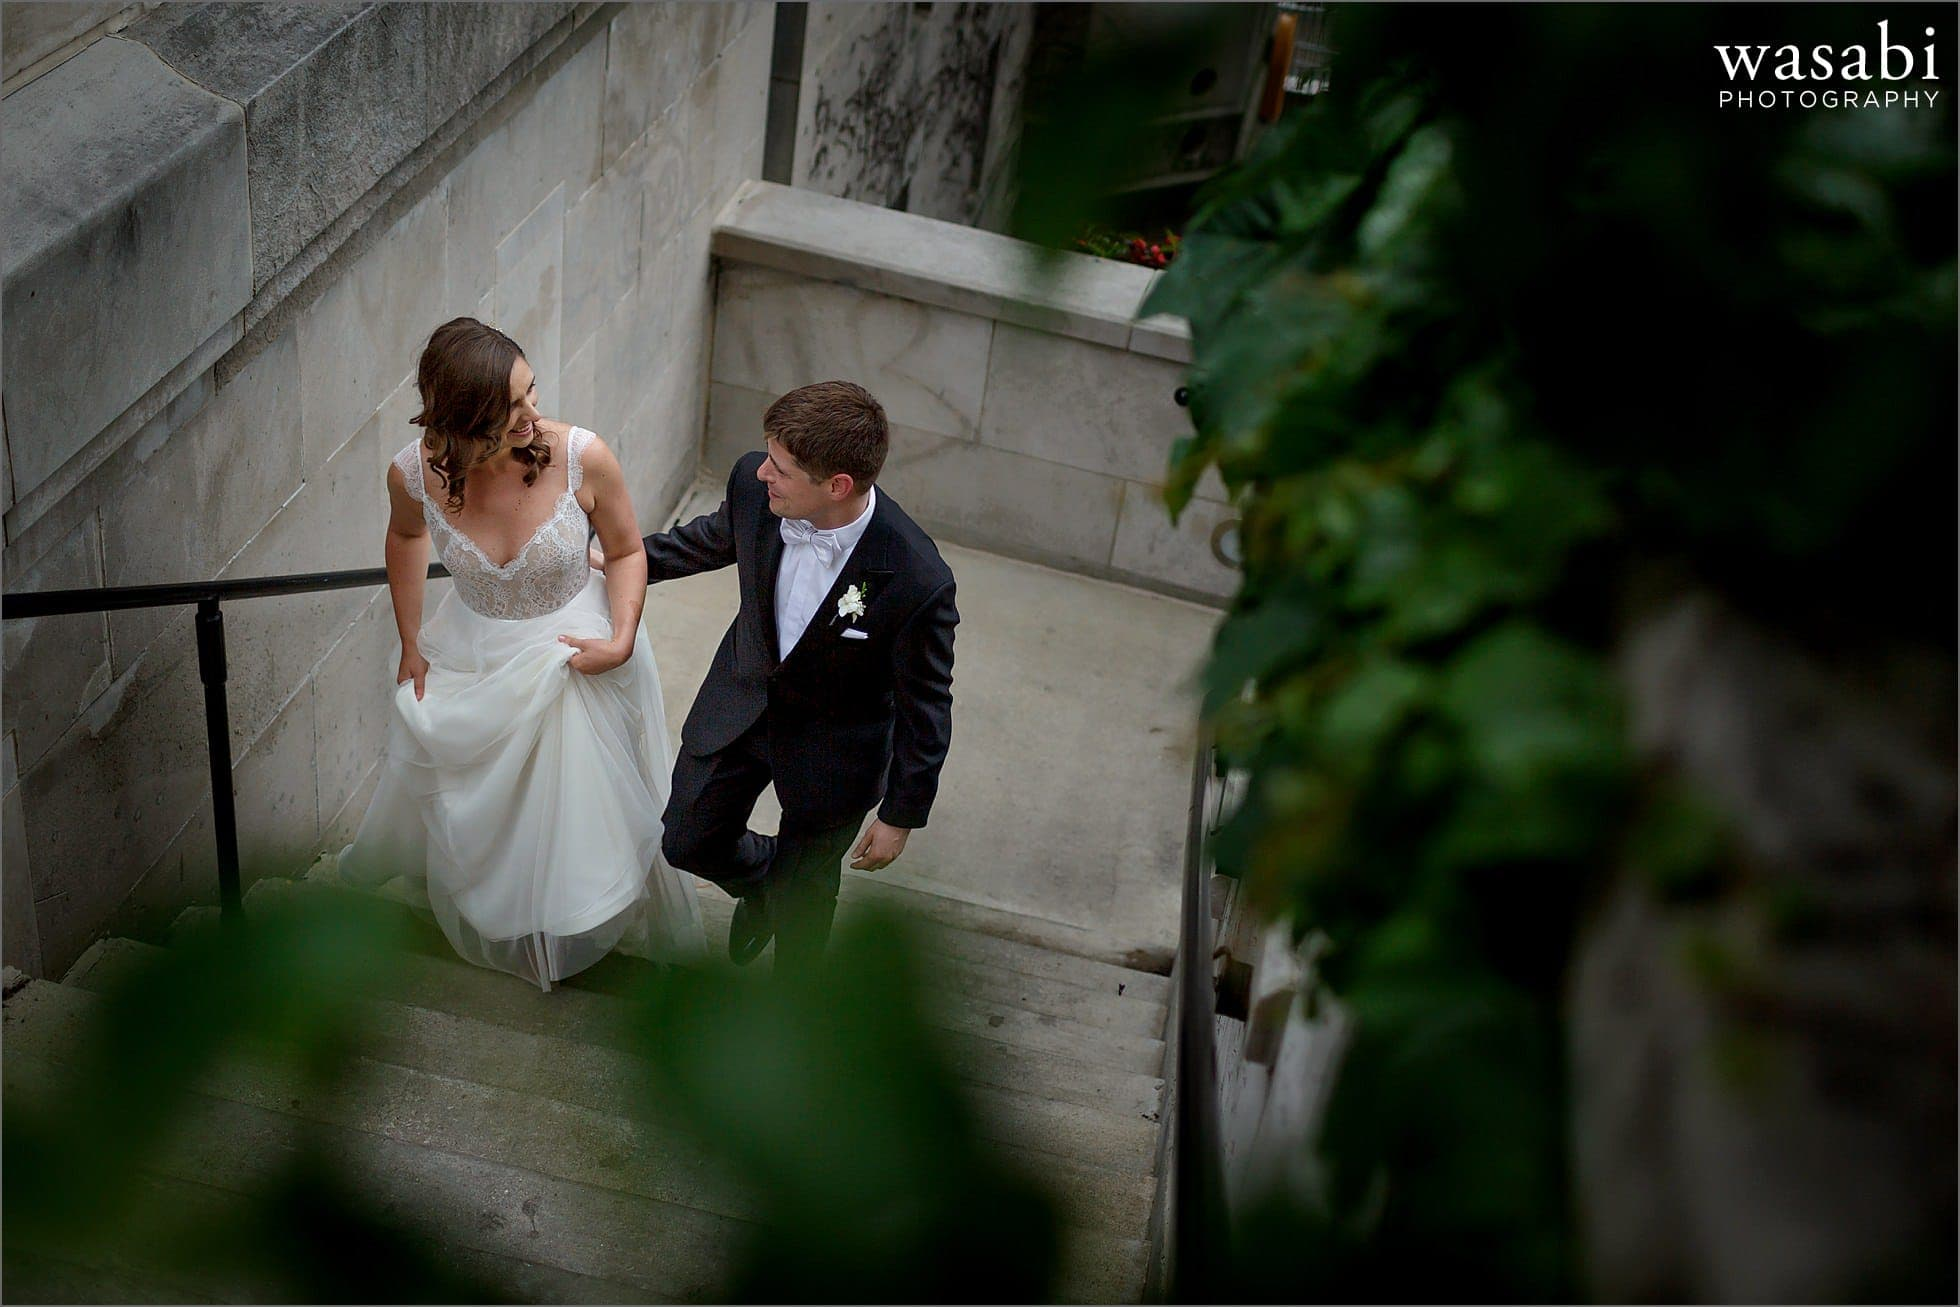 bride and groom walk up stairs from Chicago riverwalk to Wacker Street and State Street